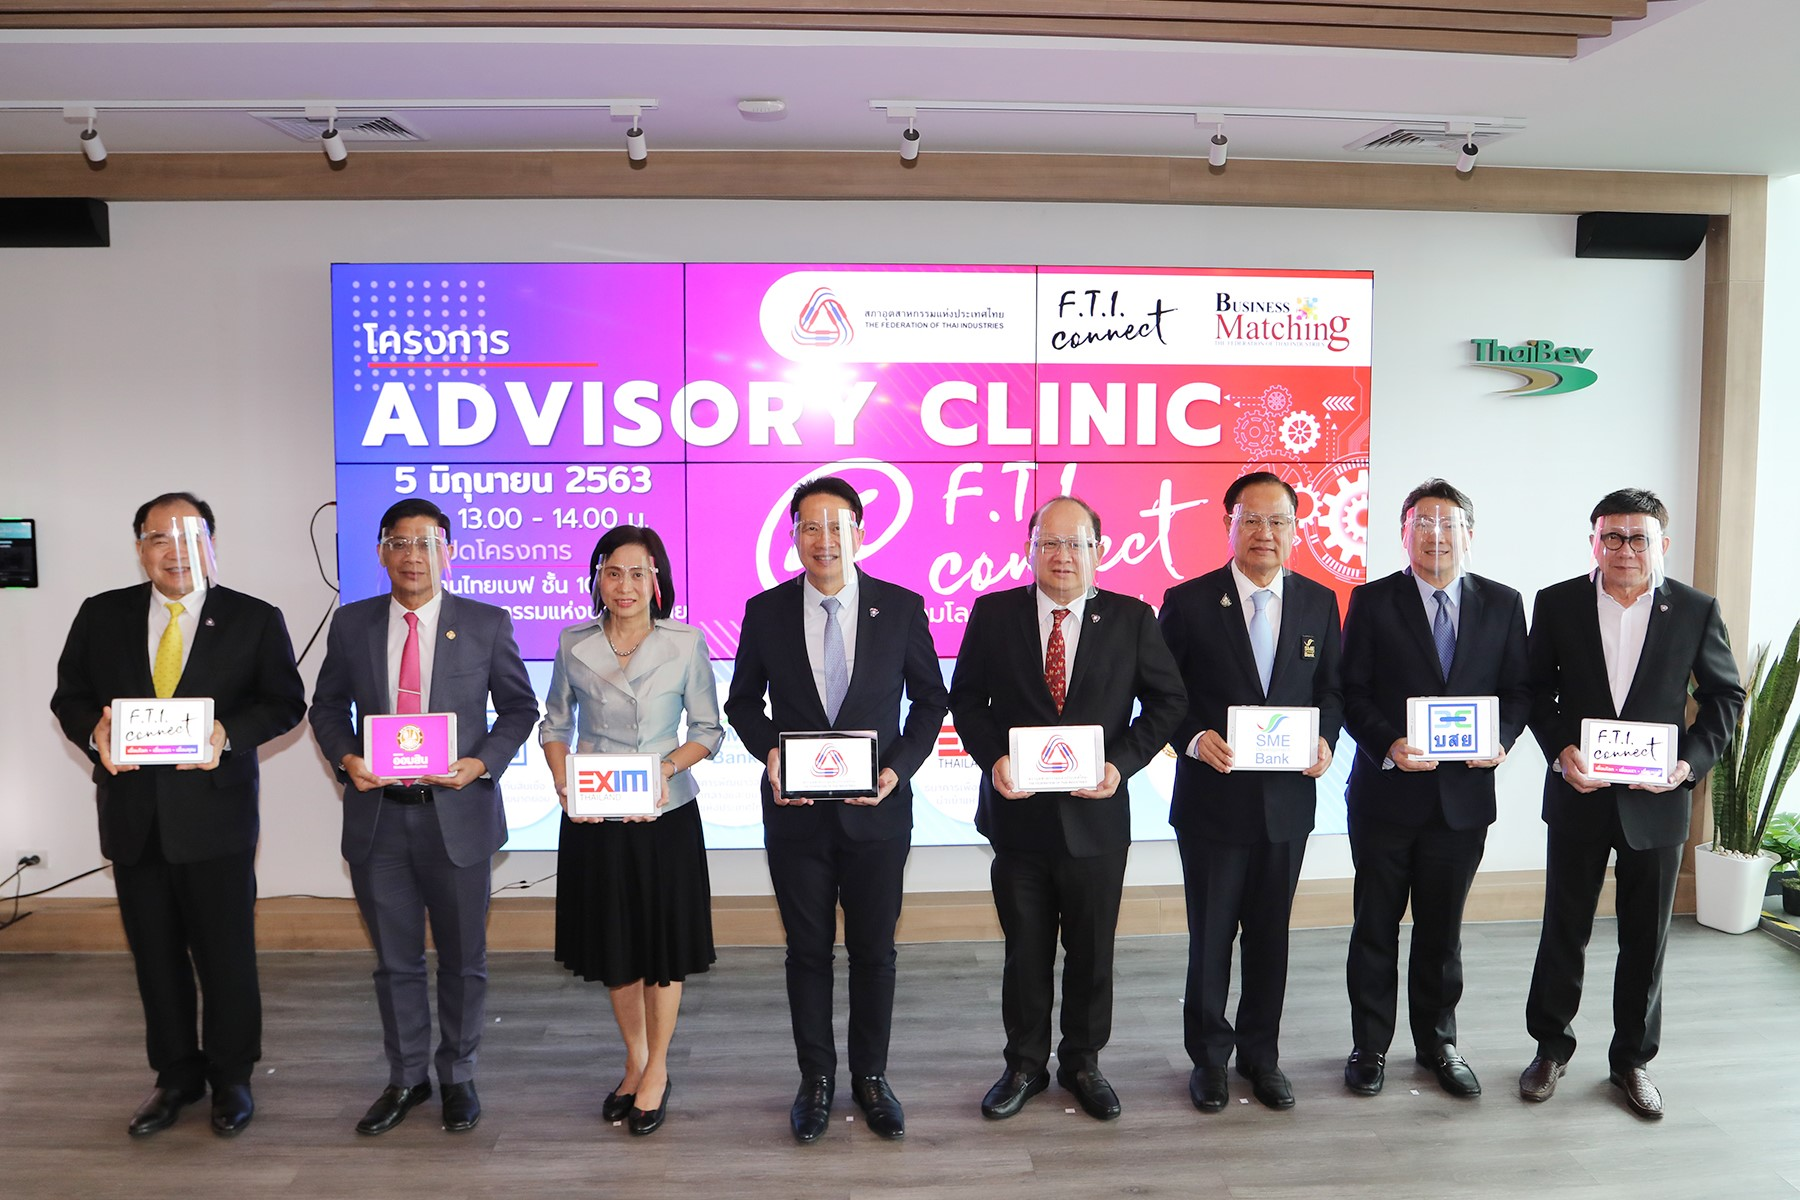 Advisory Clinic @ F.T.I. Connect